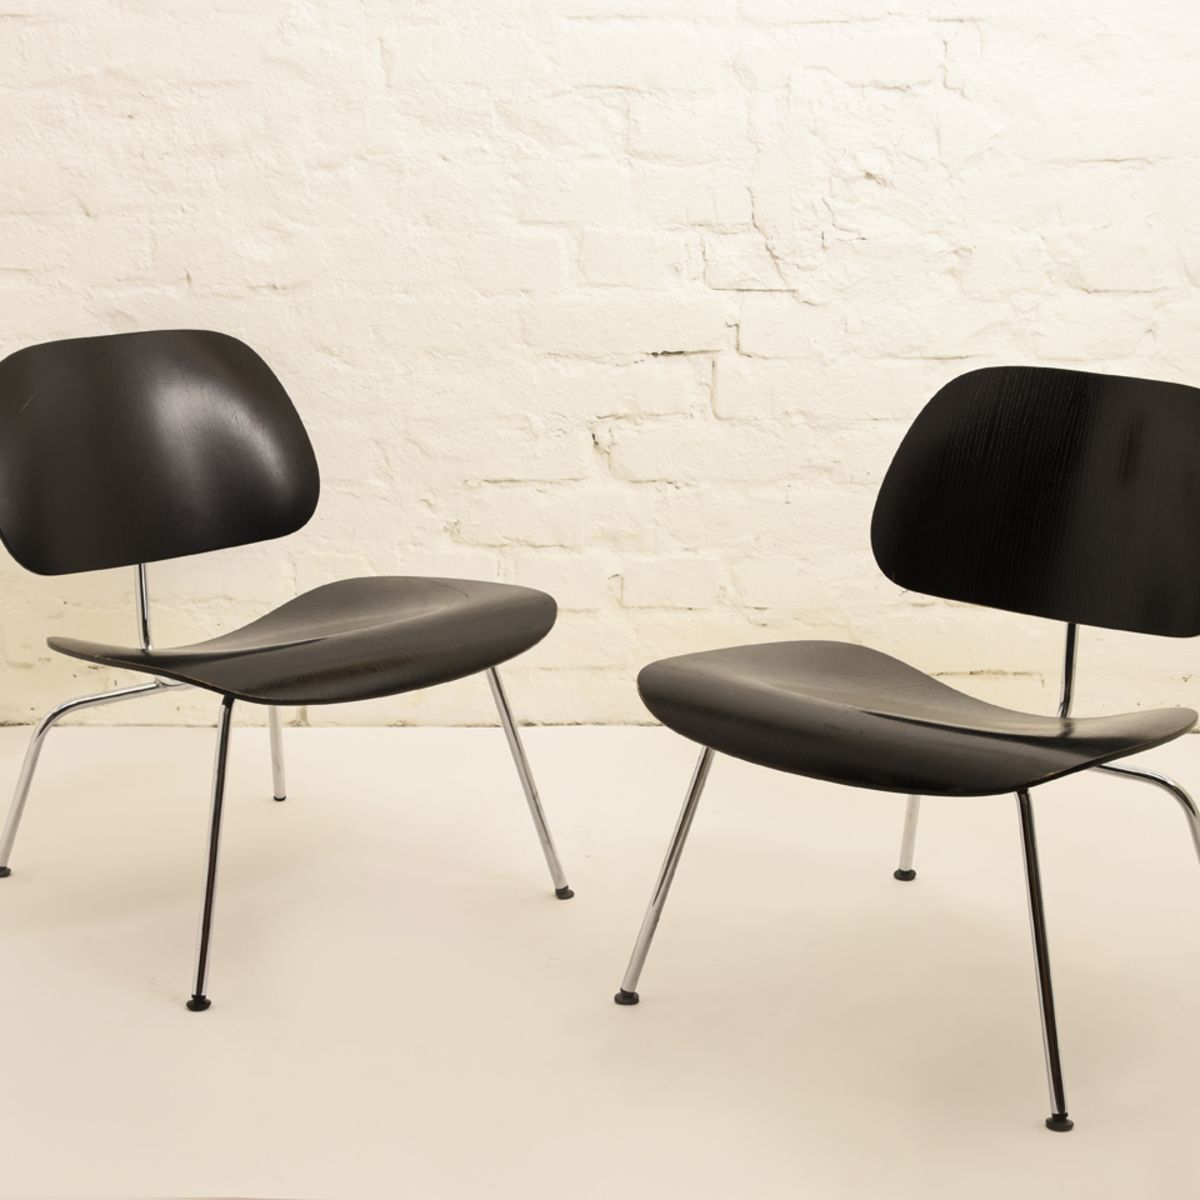 Charles-Lay-Eames-Lcm-Lounge-Chair